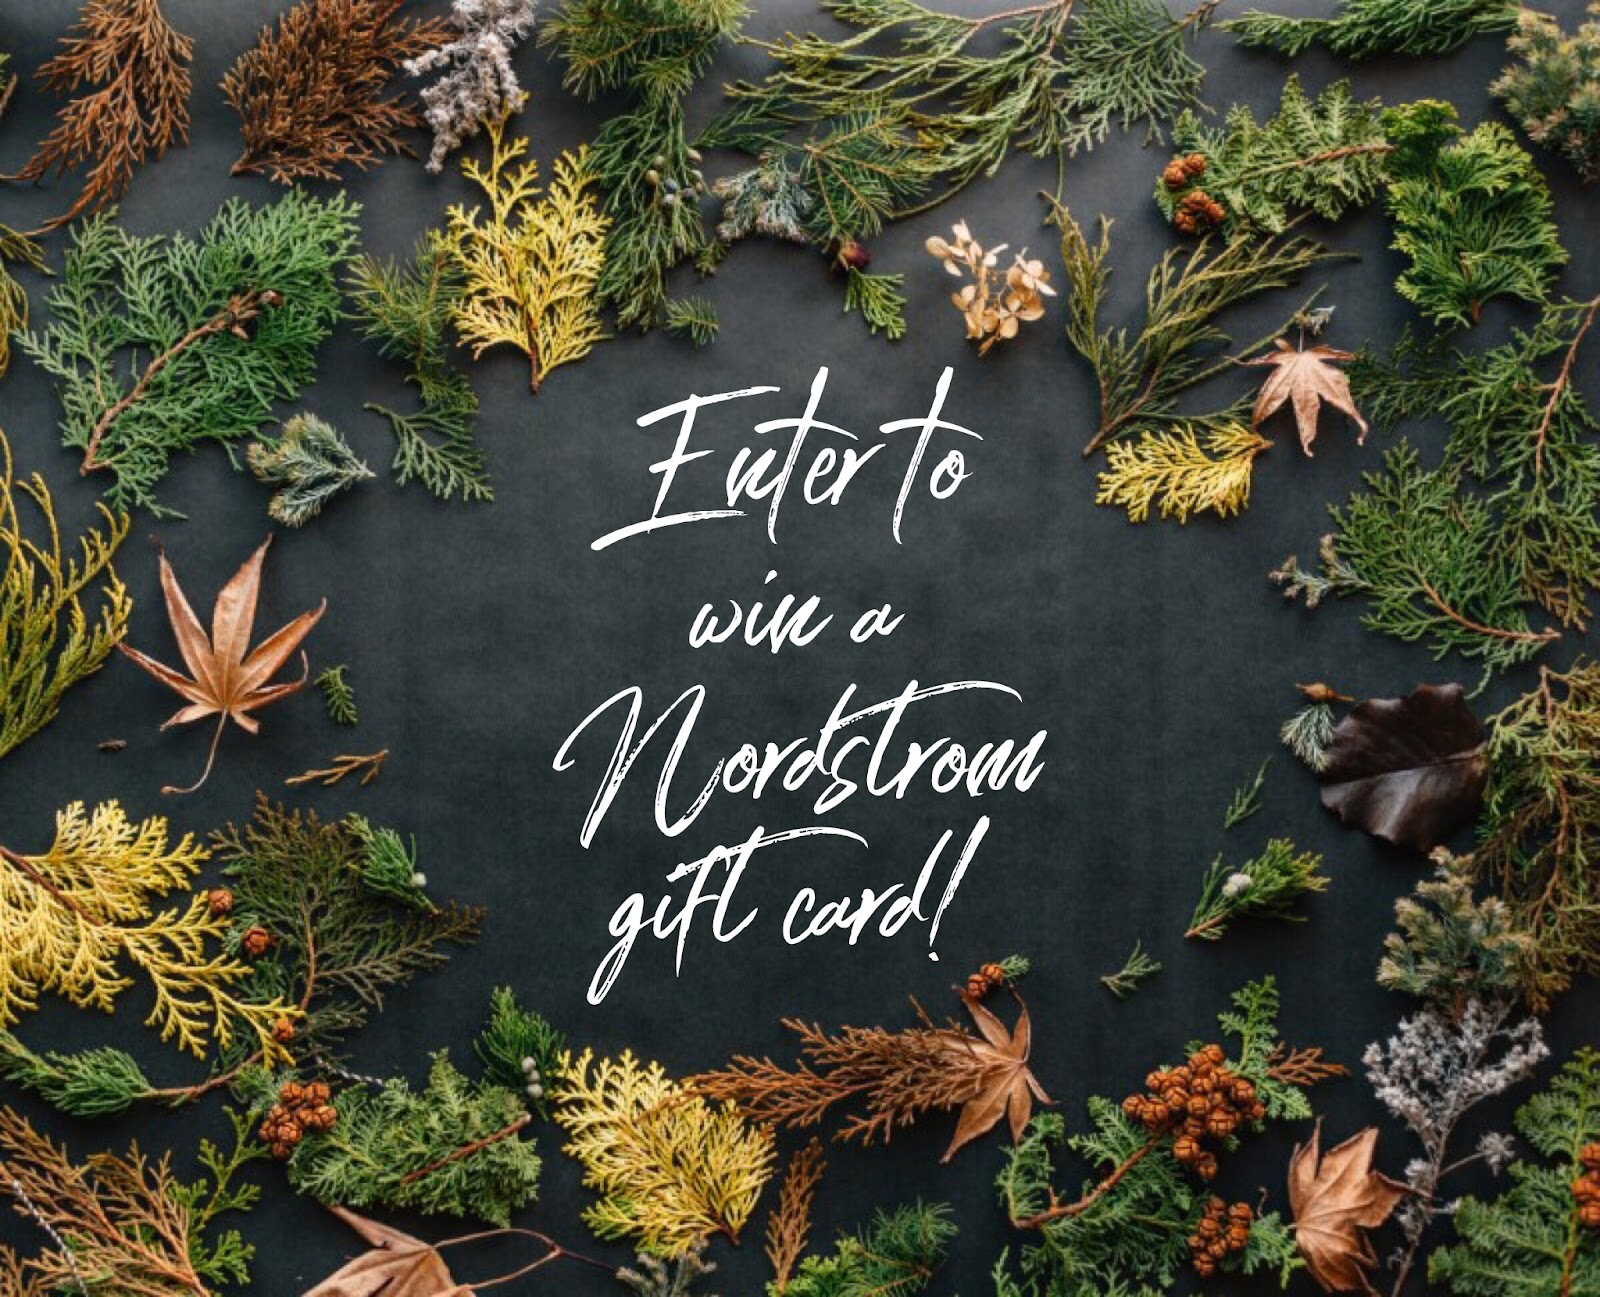 Mail4Rosey: $100 Nordstrom Gift Card #Giveaway